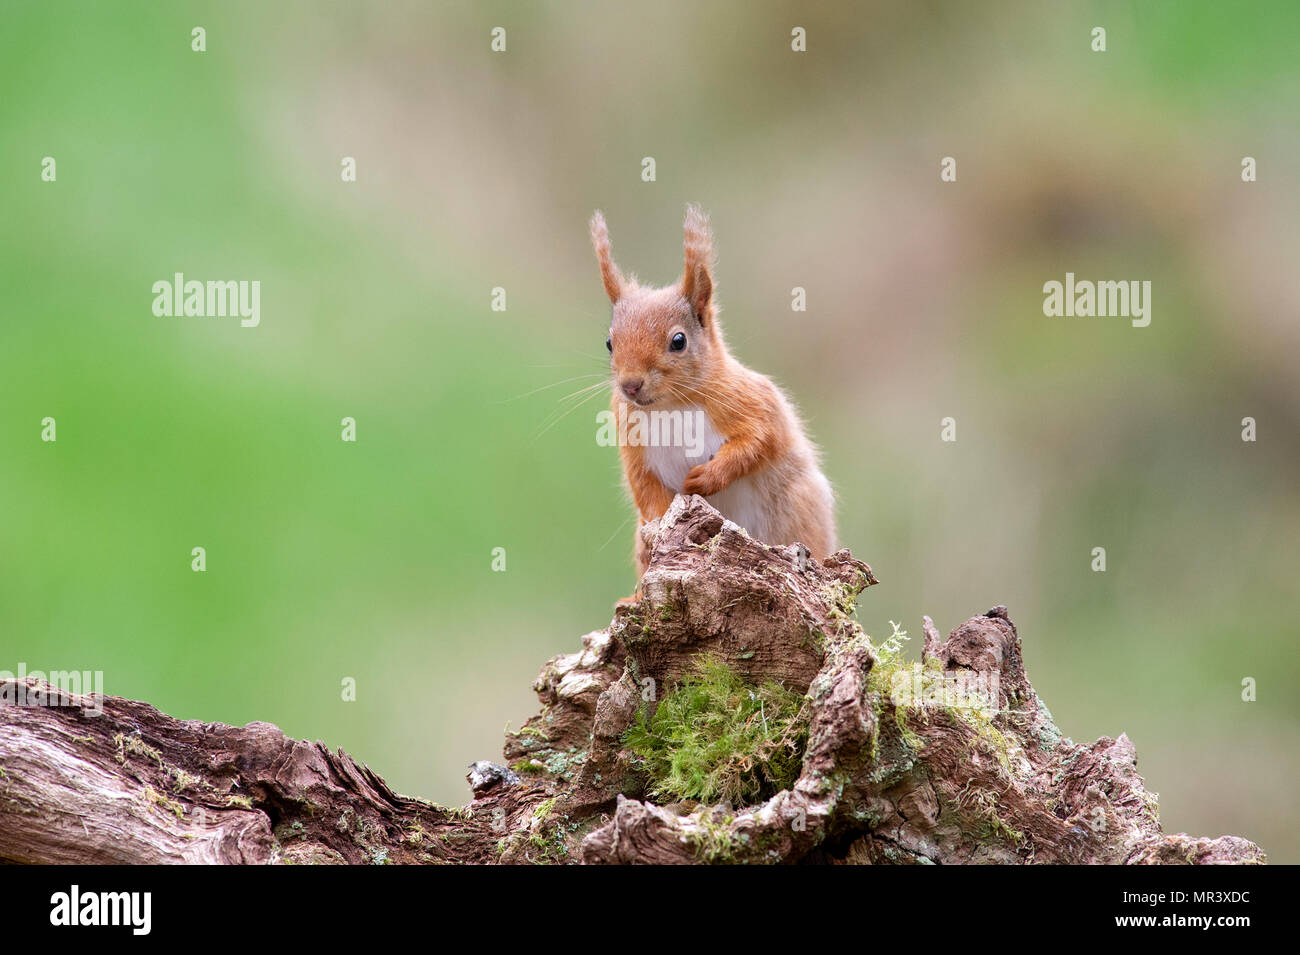 A Red Squirrel (Sciurus vulgaris) in the woodlands of Dumfries and Galloway, Scotland, UK - Stock Image